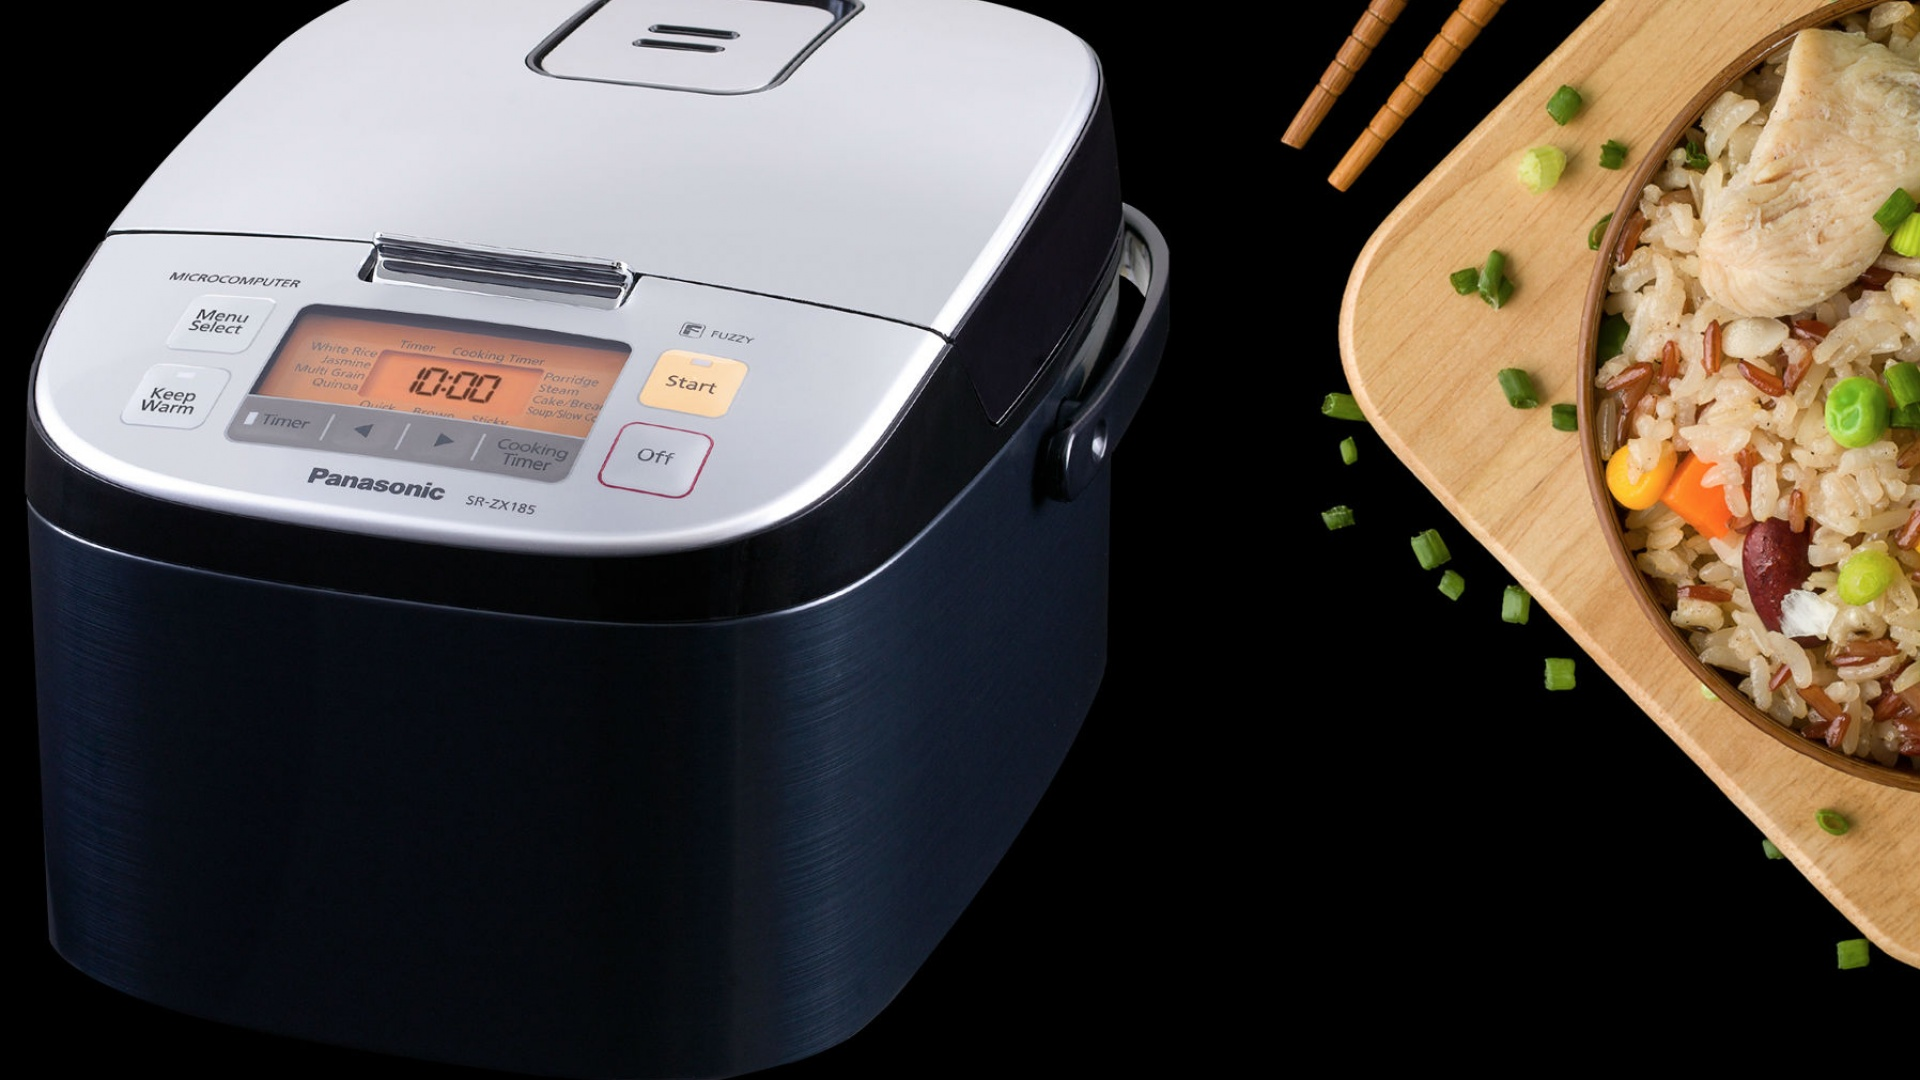 Weapons of Choice: Panasonic SR-ZX185 Rice Cooker